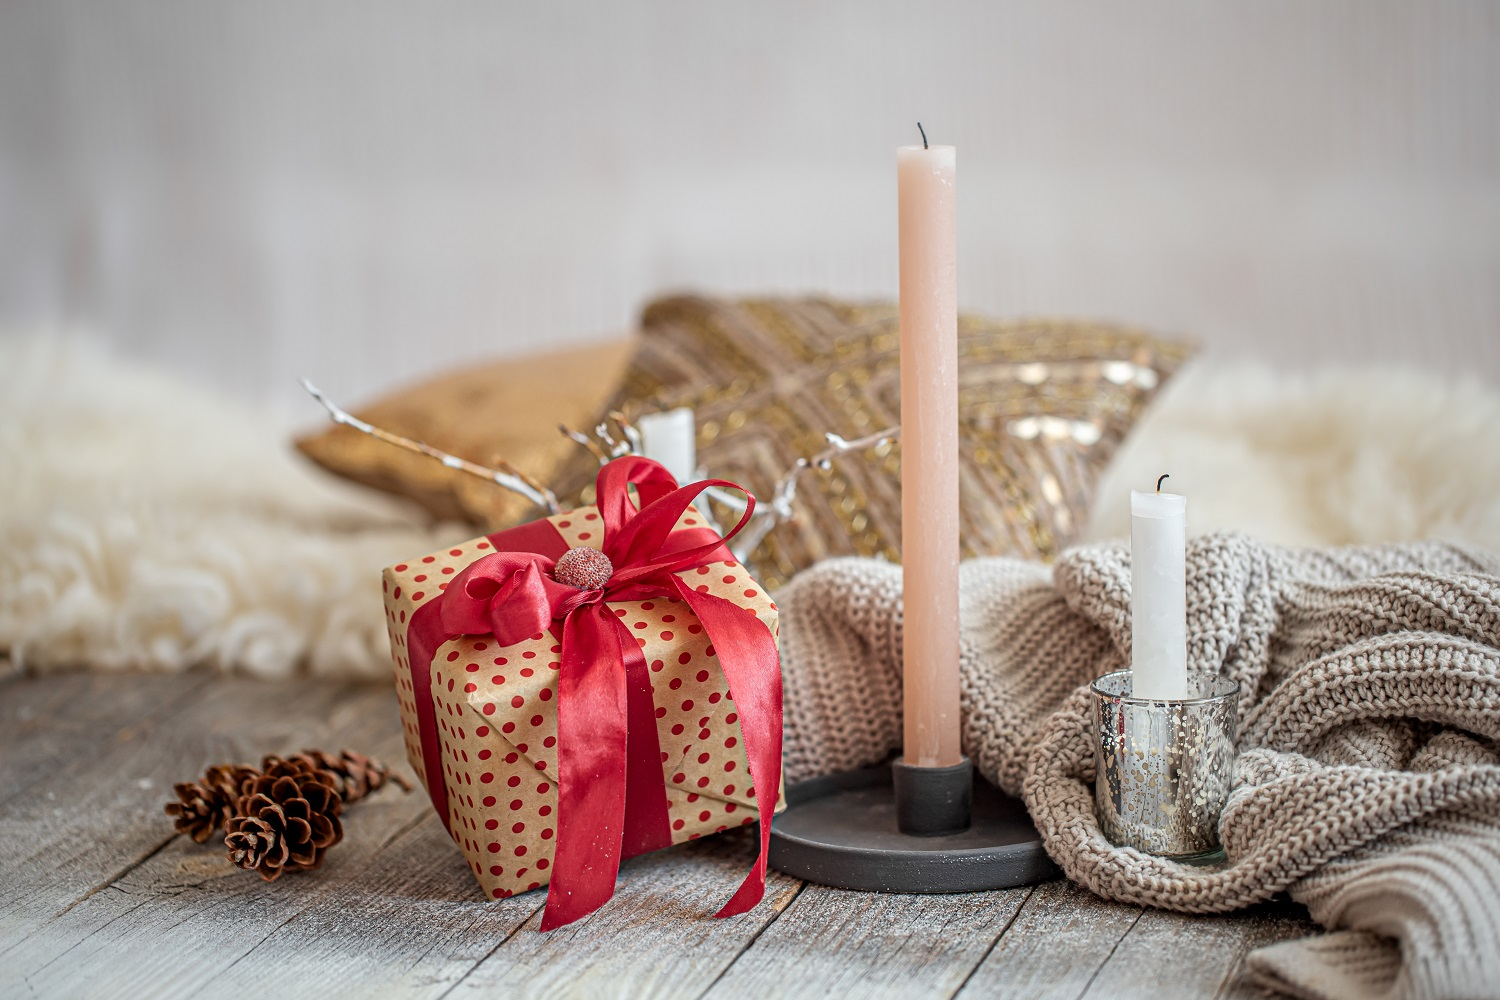 Cozy festive still life with a gift and a candle on a wooden table. The festive concept.